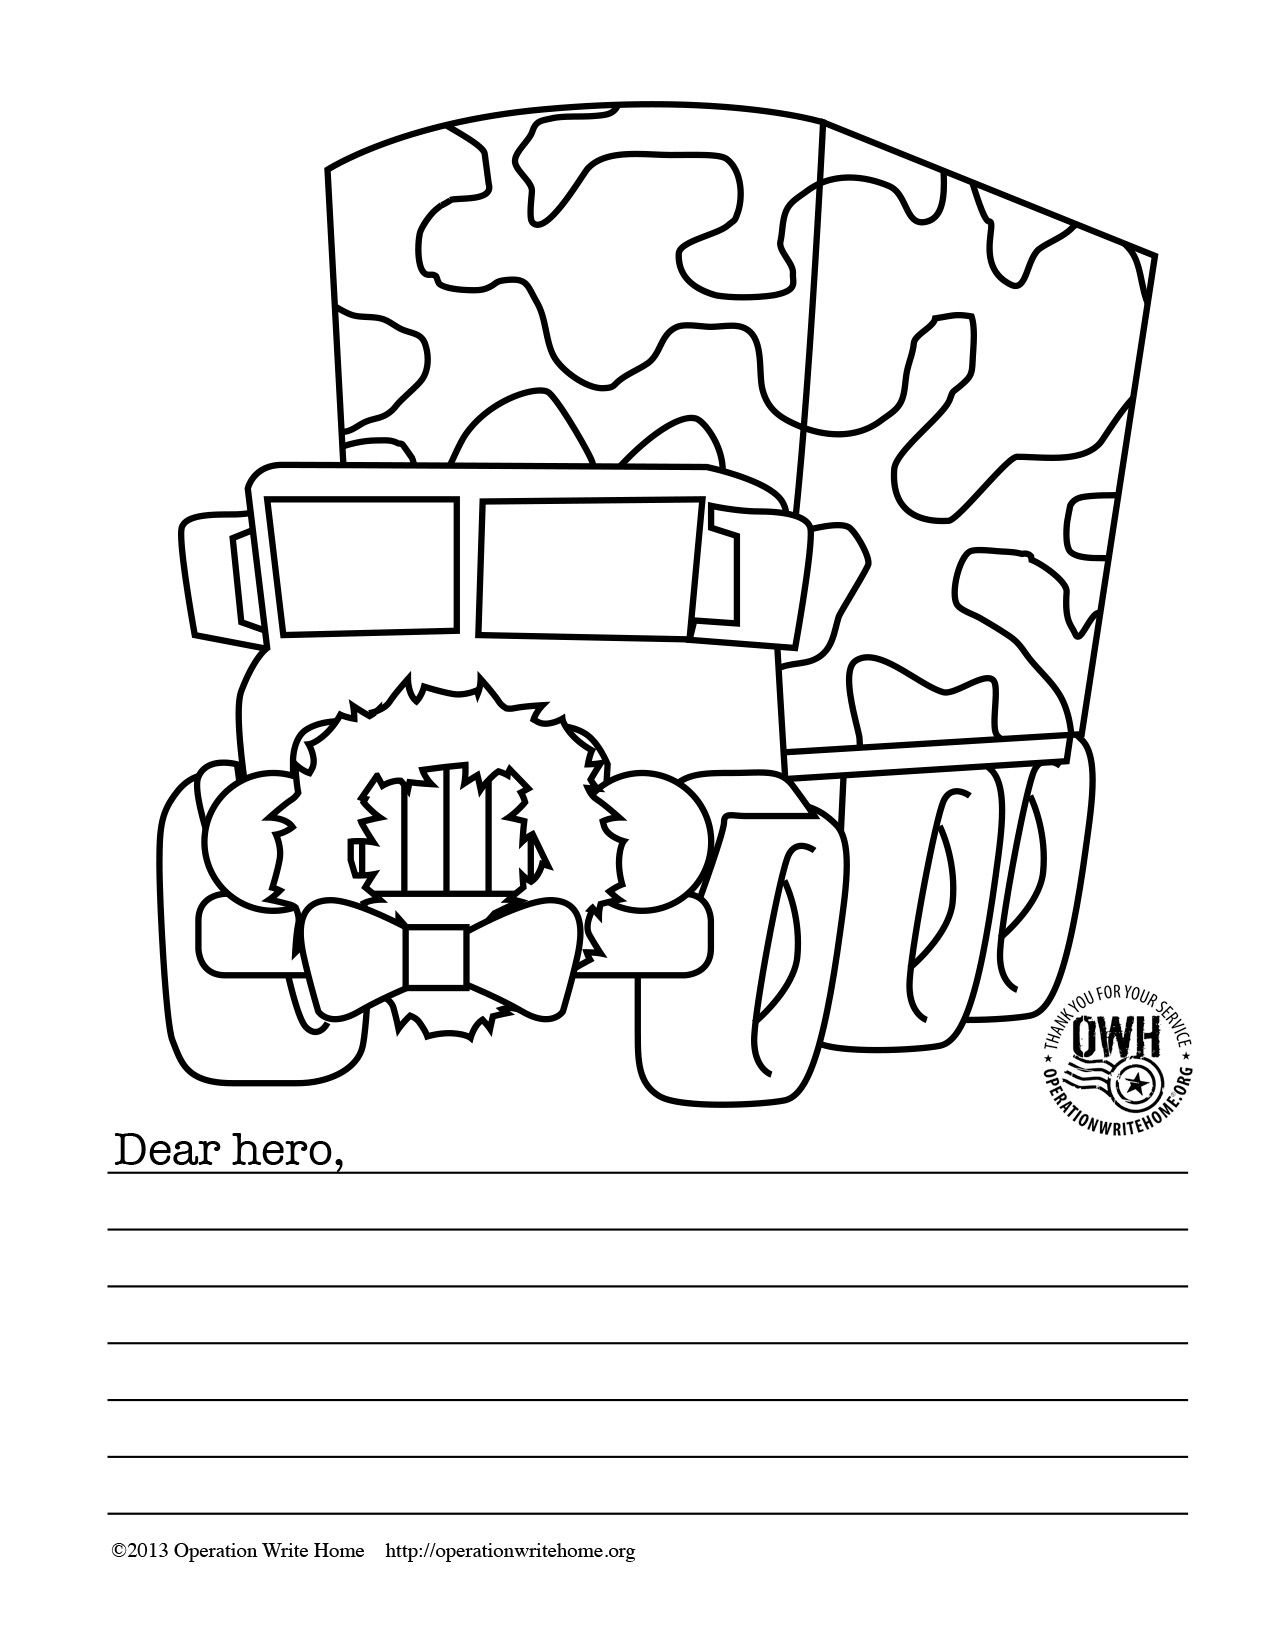 Christmas Coloring In Cards With FREE Military Pages For Operation Write Home